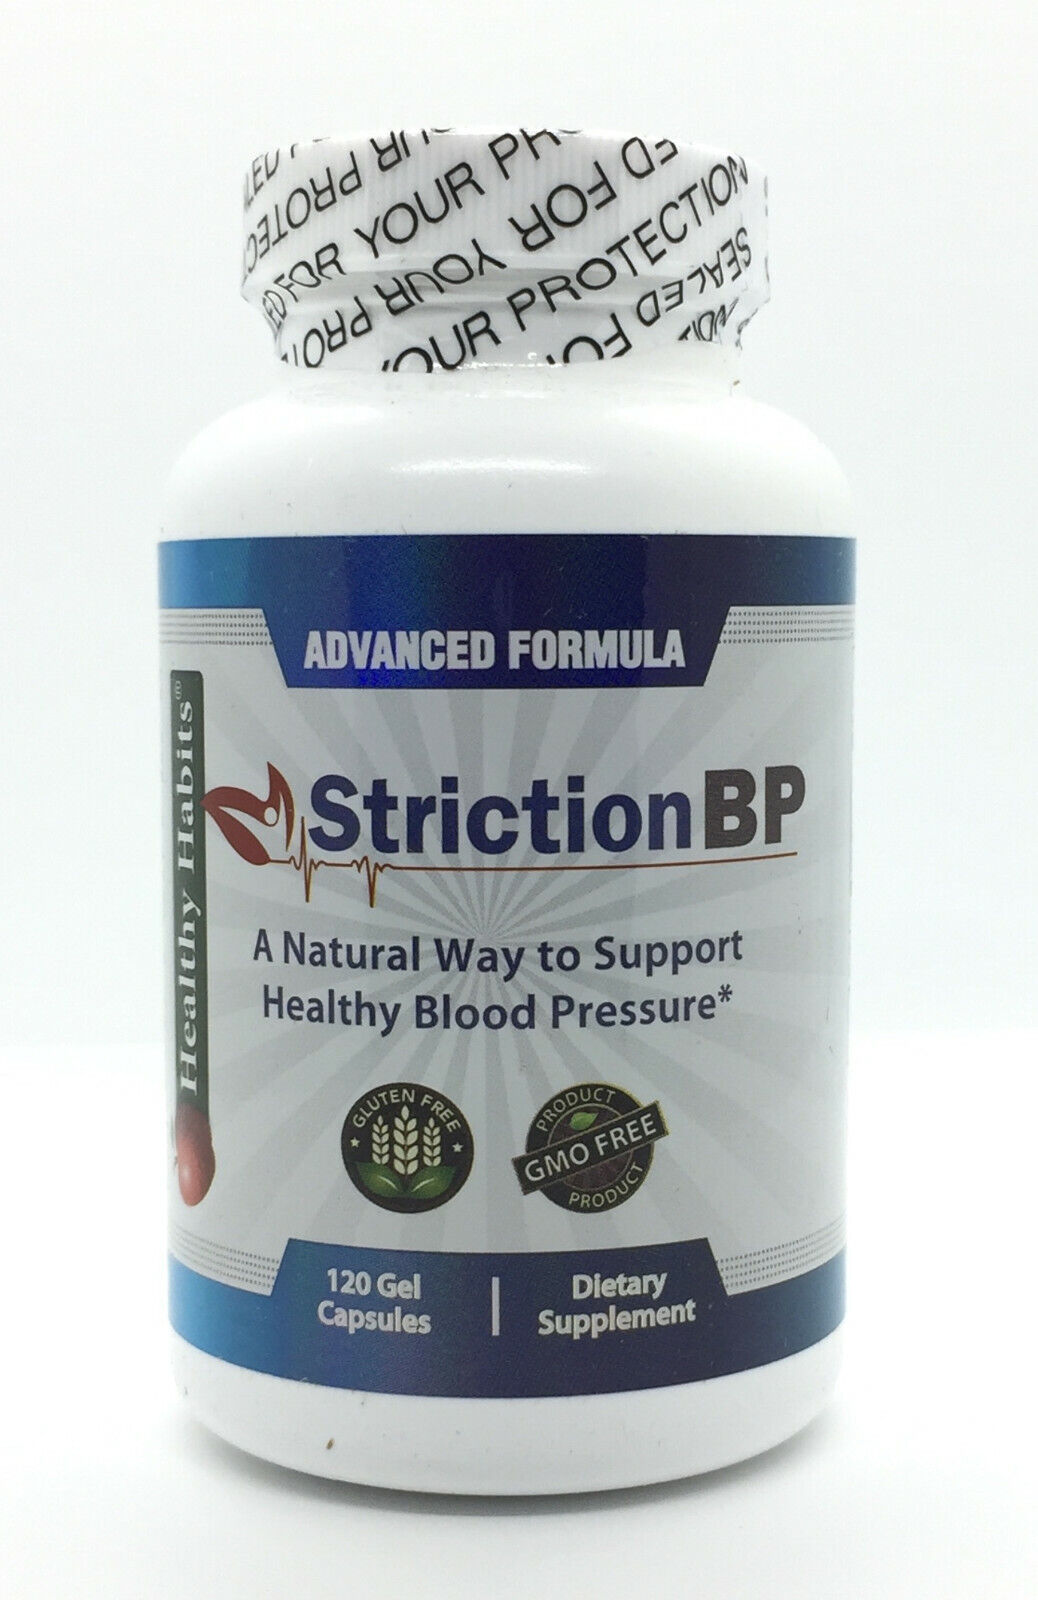 Striction BP Advanced Formula Support Healthy Blood Pressure StrictionBP NEW